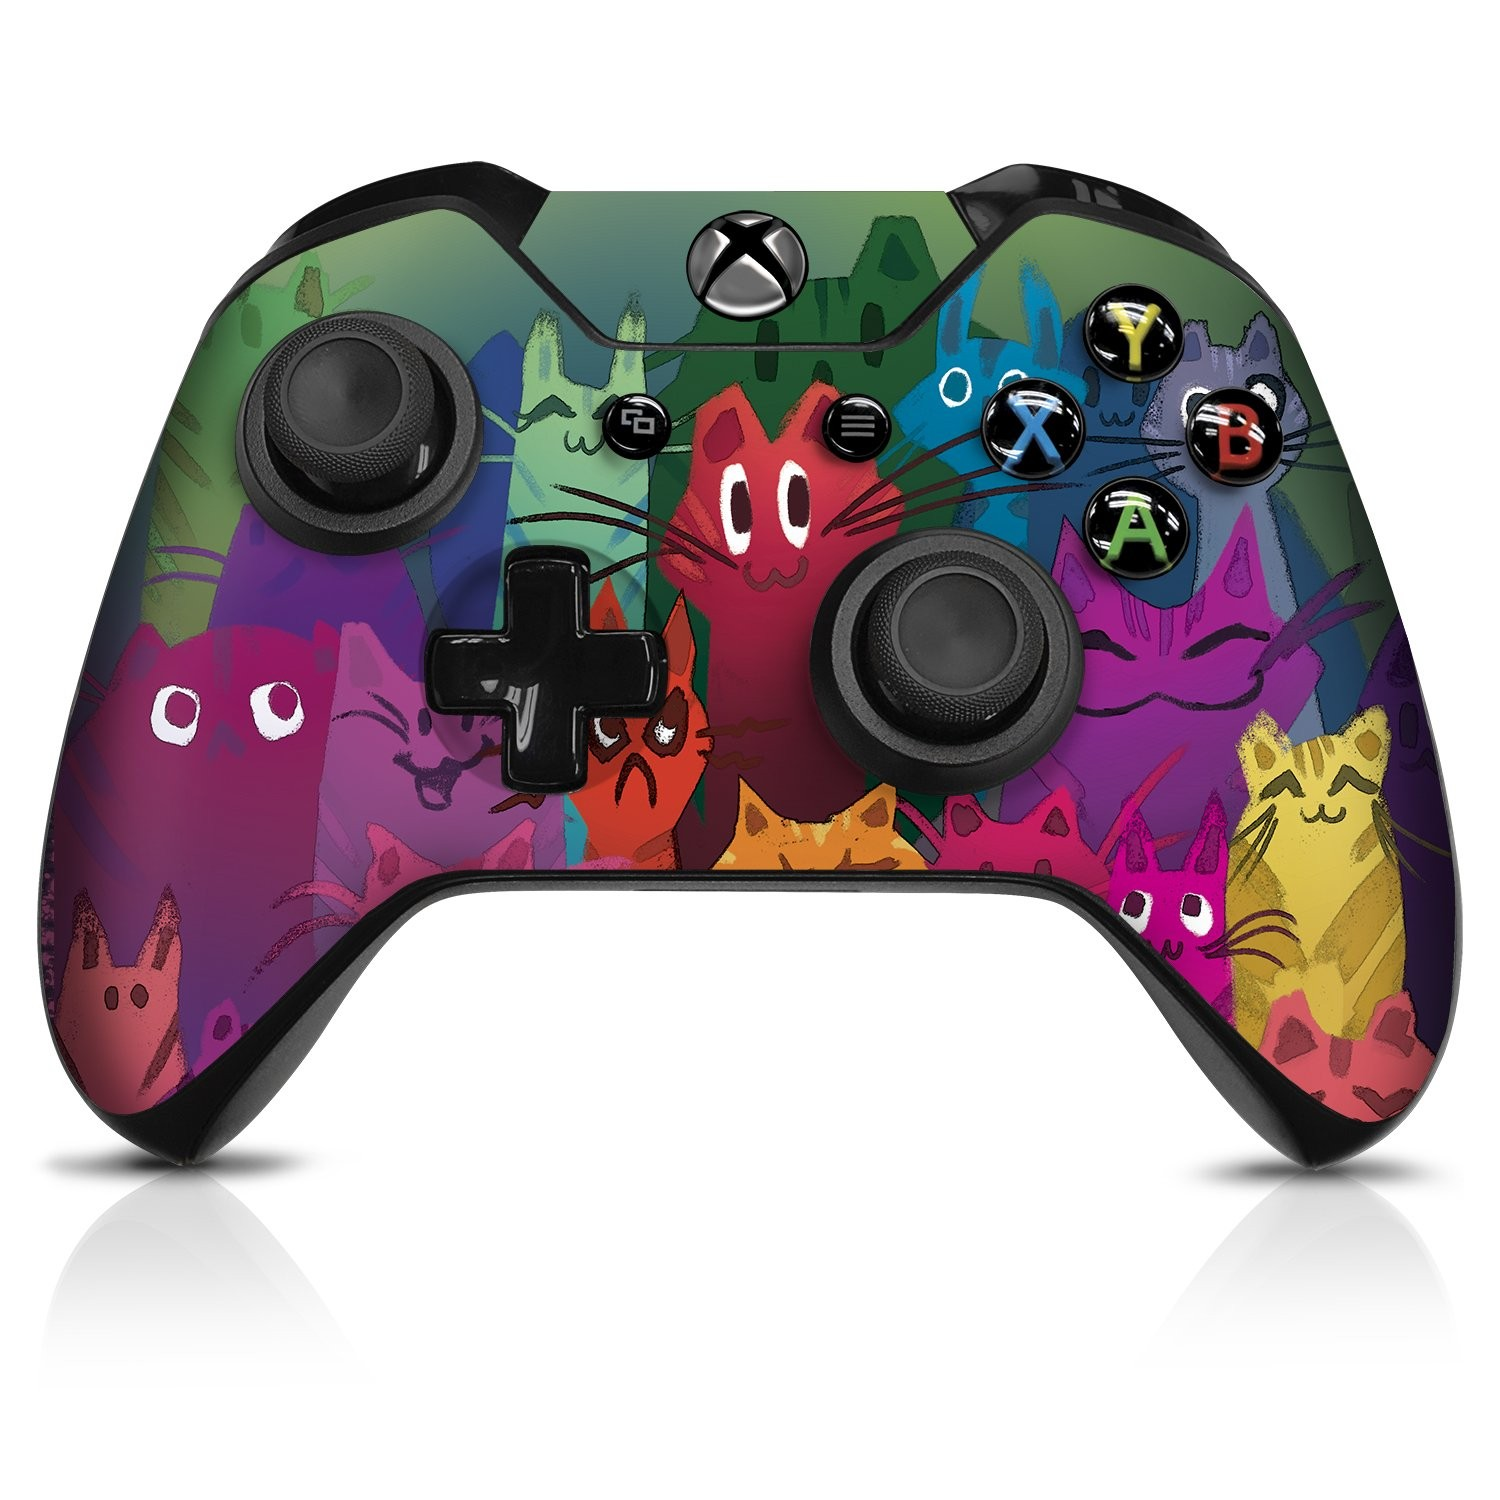 Cats  Xbox One Controller Skin - Officially Licensed by Xbox - Controller Gear